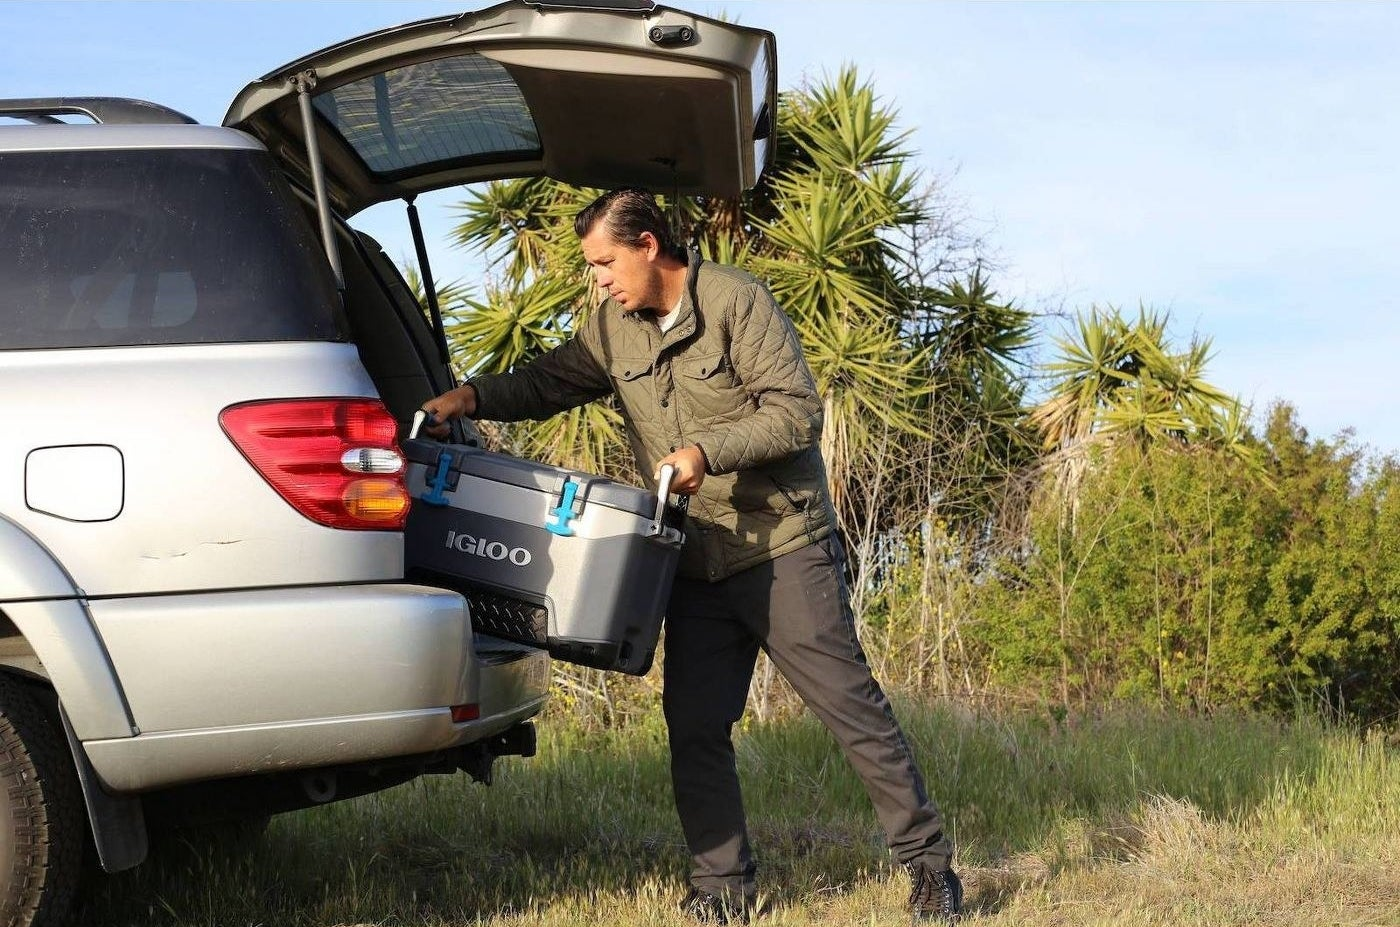 man putting ice chest into the trunk of a car